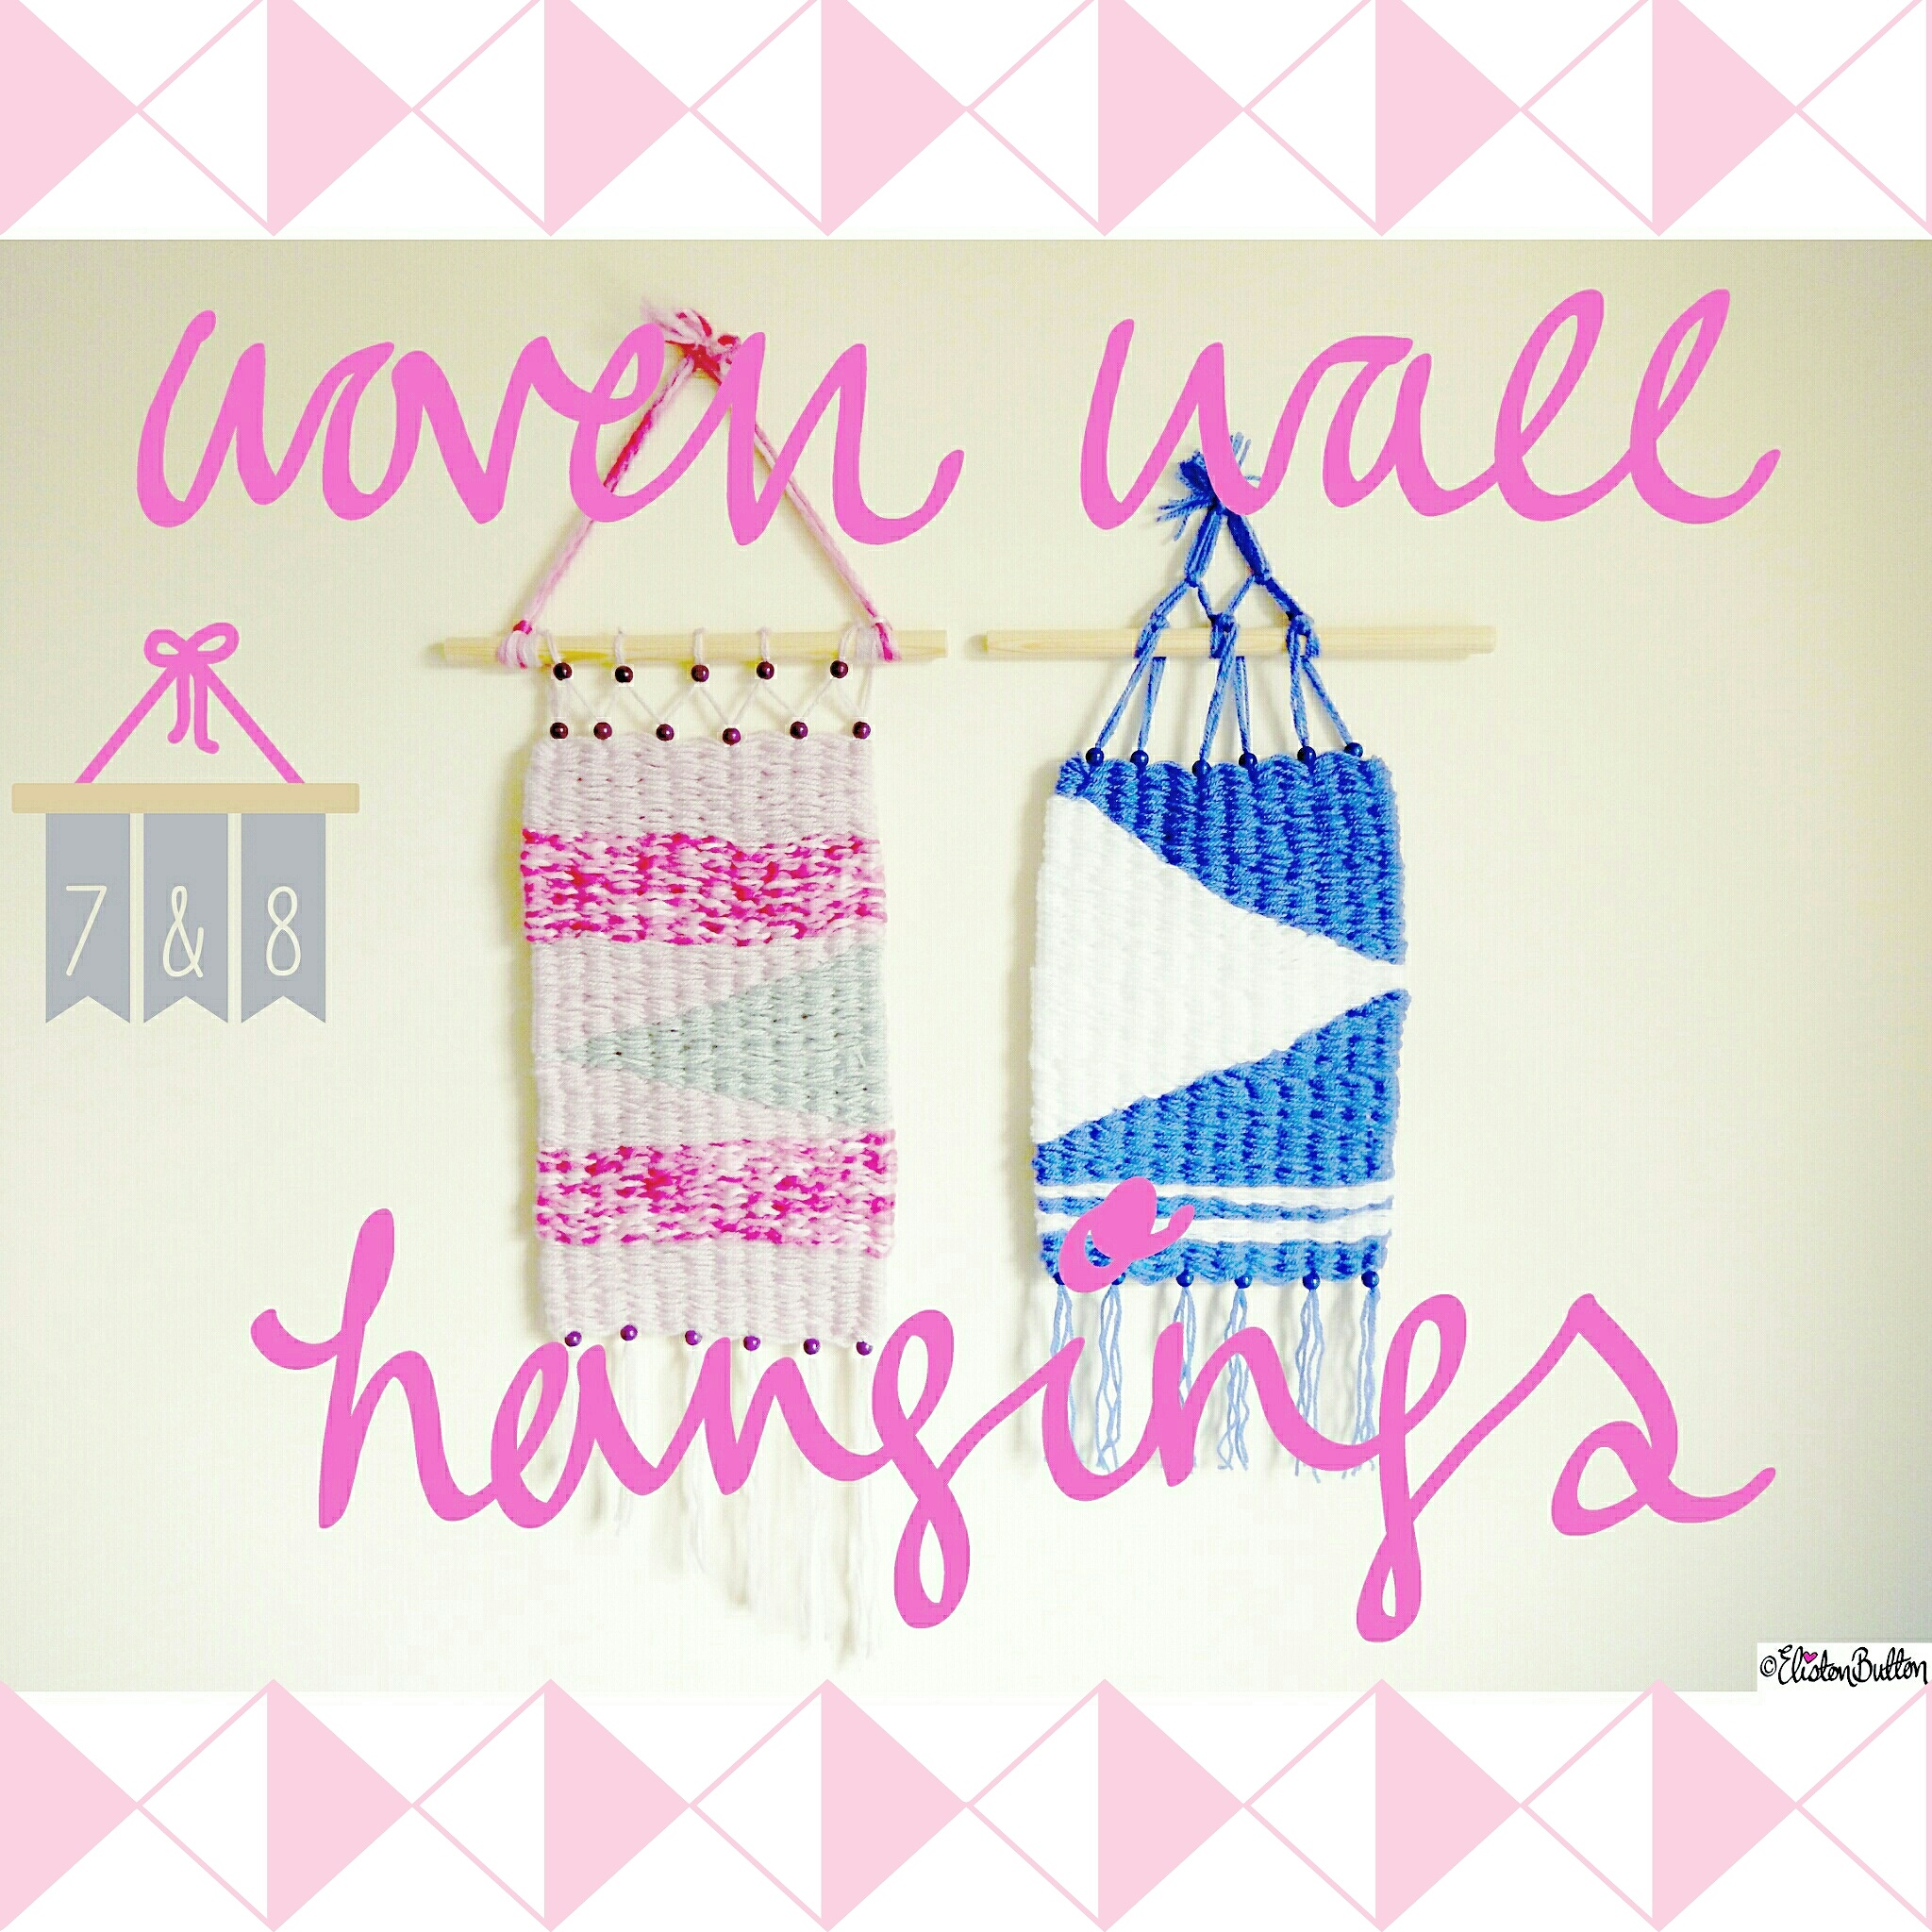 Woven Wall Hangings - Create 28 - I Did It! (a.k.a. My Therapy Session) at www.elistonbutton.com - Eliston Button - That Crafty Kid – Art, Design, Craft & Adventure.